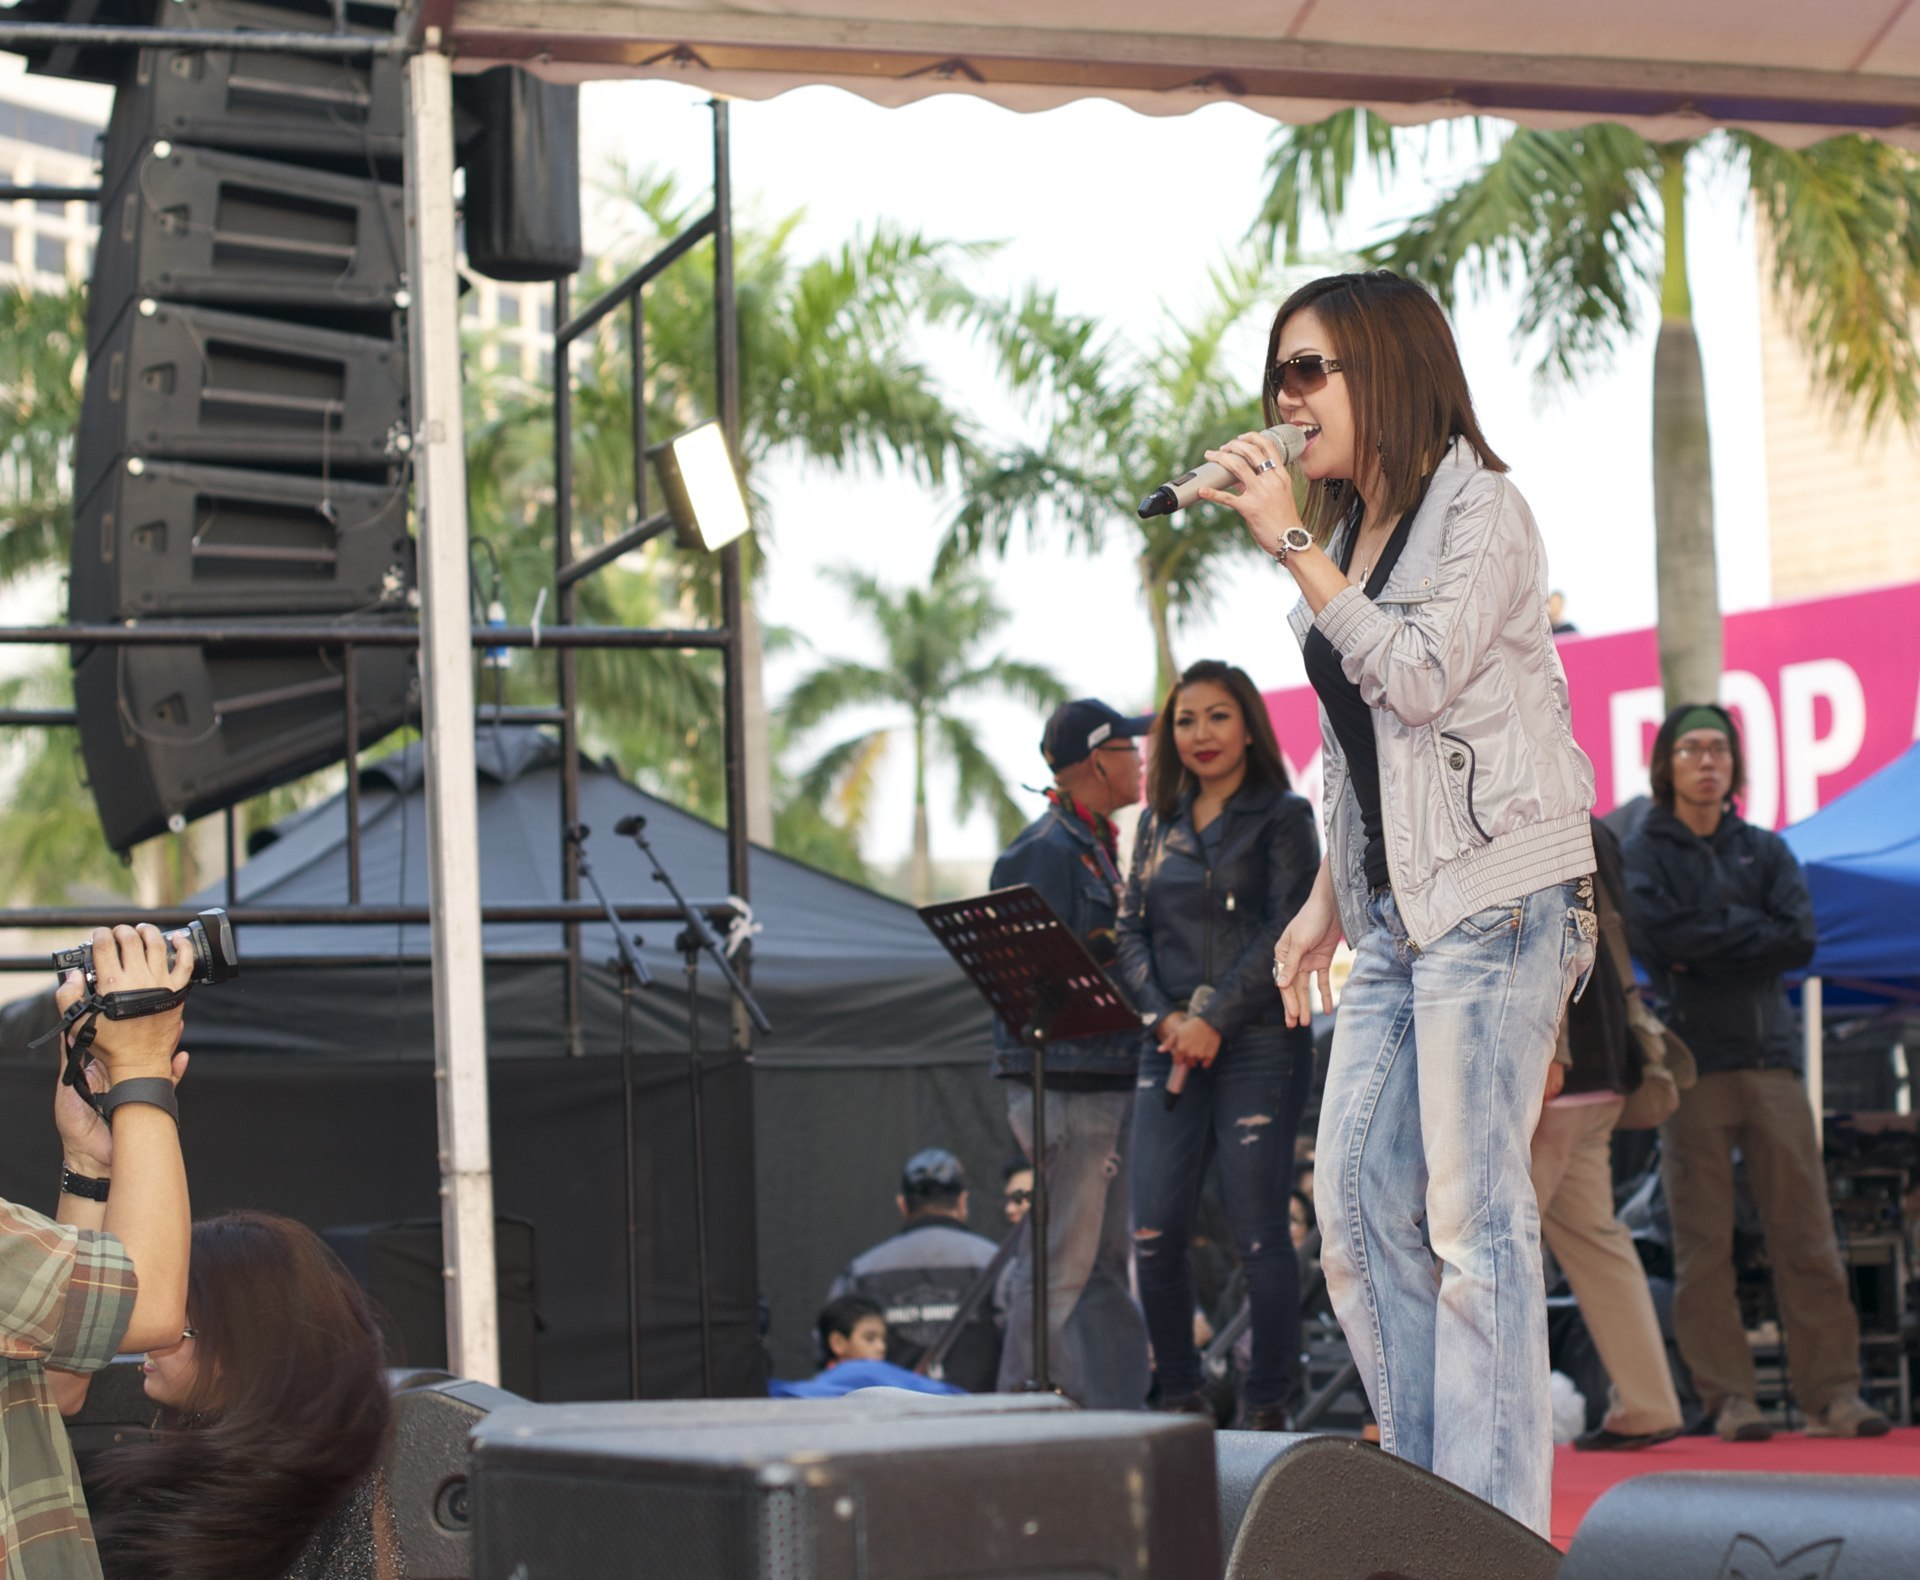 Ela Alegre - Concert at the Park